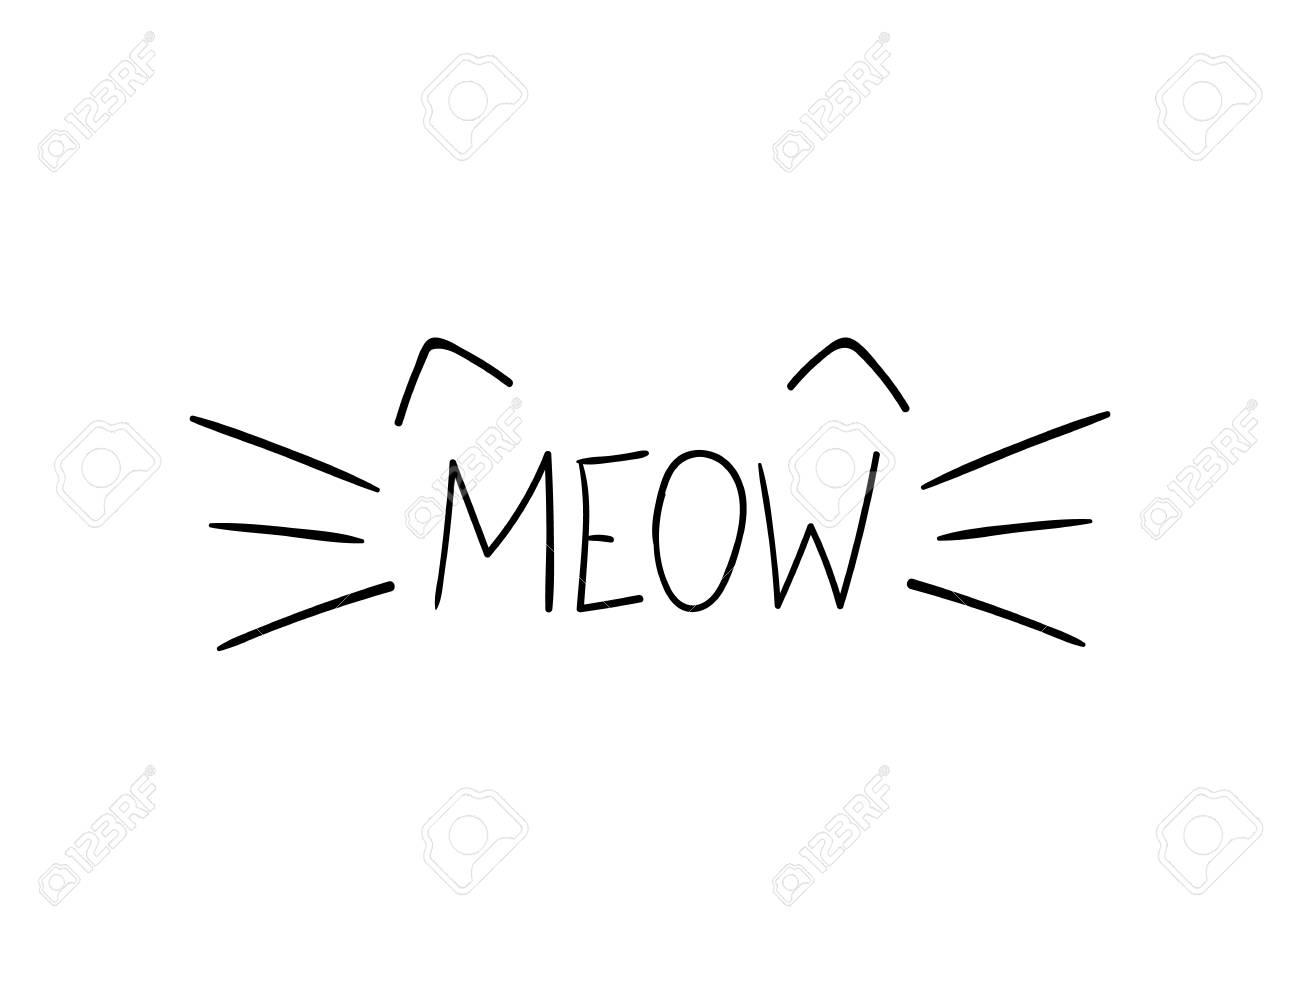 Vector Doodle Meow Illustration, Cat Whiskers Hand Drawn Illustration...